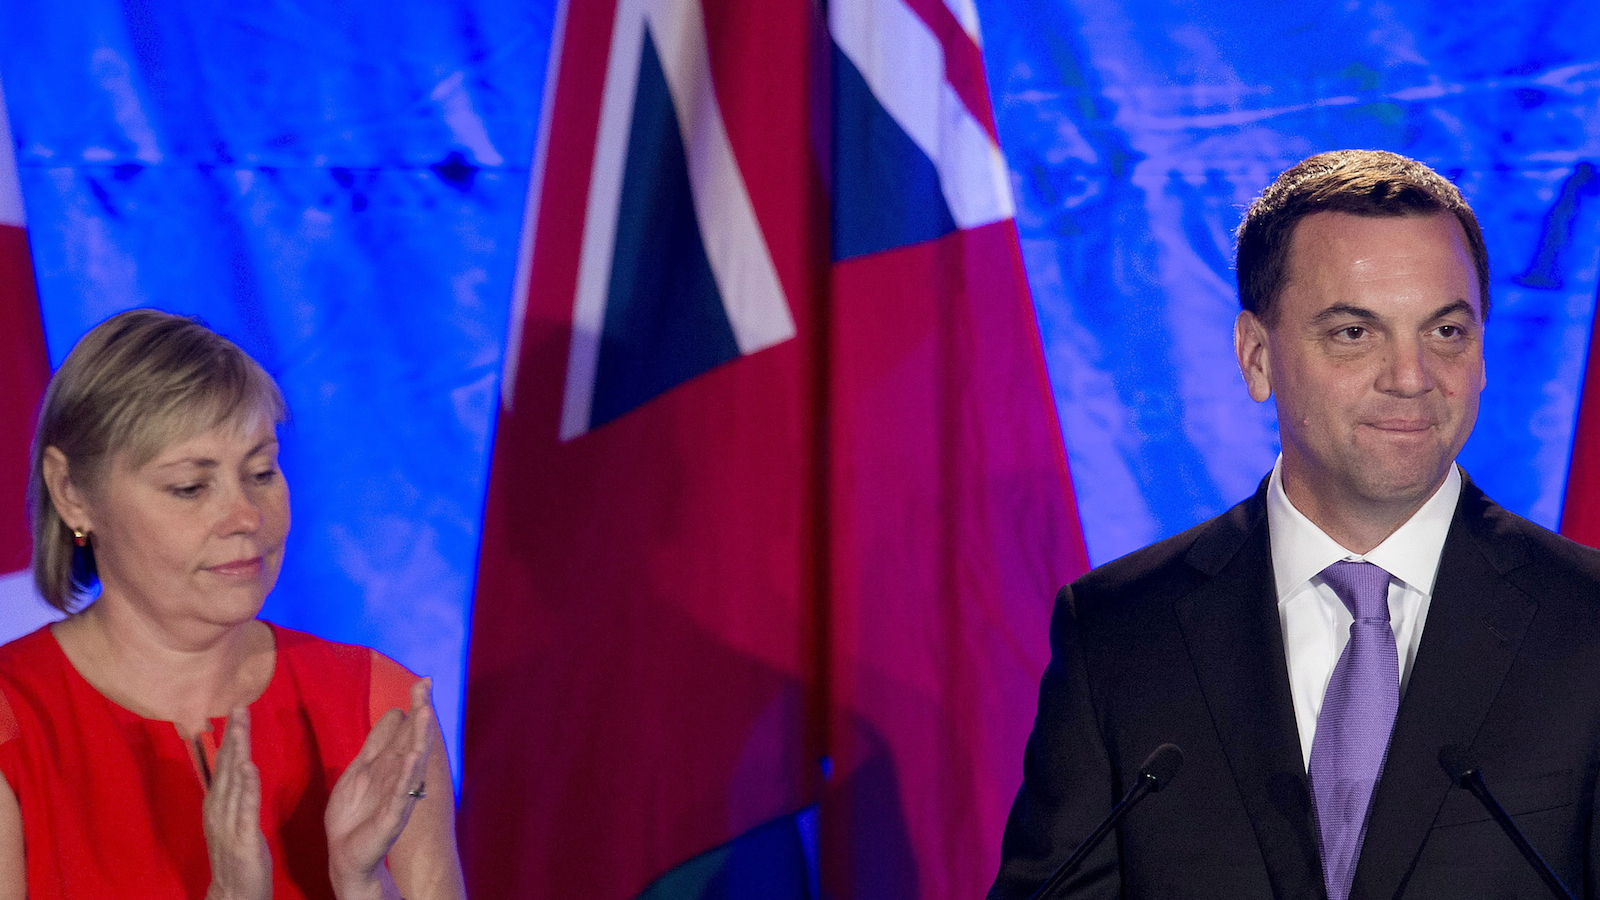 Ontario Progressive Conservative leader Tim Hudak, right, announces next to his wife Deb Hutton that he will be stepping down as party leader after being defeated his election night campaign head quarters in Grimsby, Ont., on Thursday, June 12, 2014. THE CANADIAN PRESS/Nathan Denette